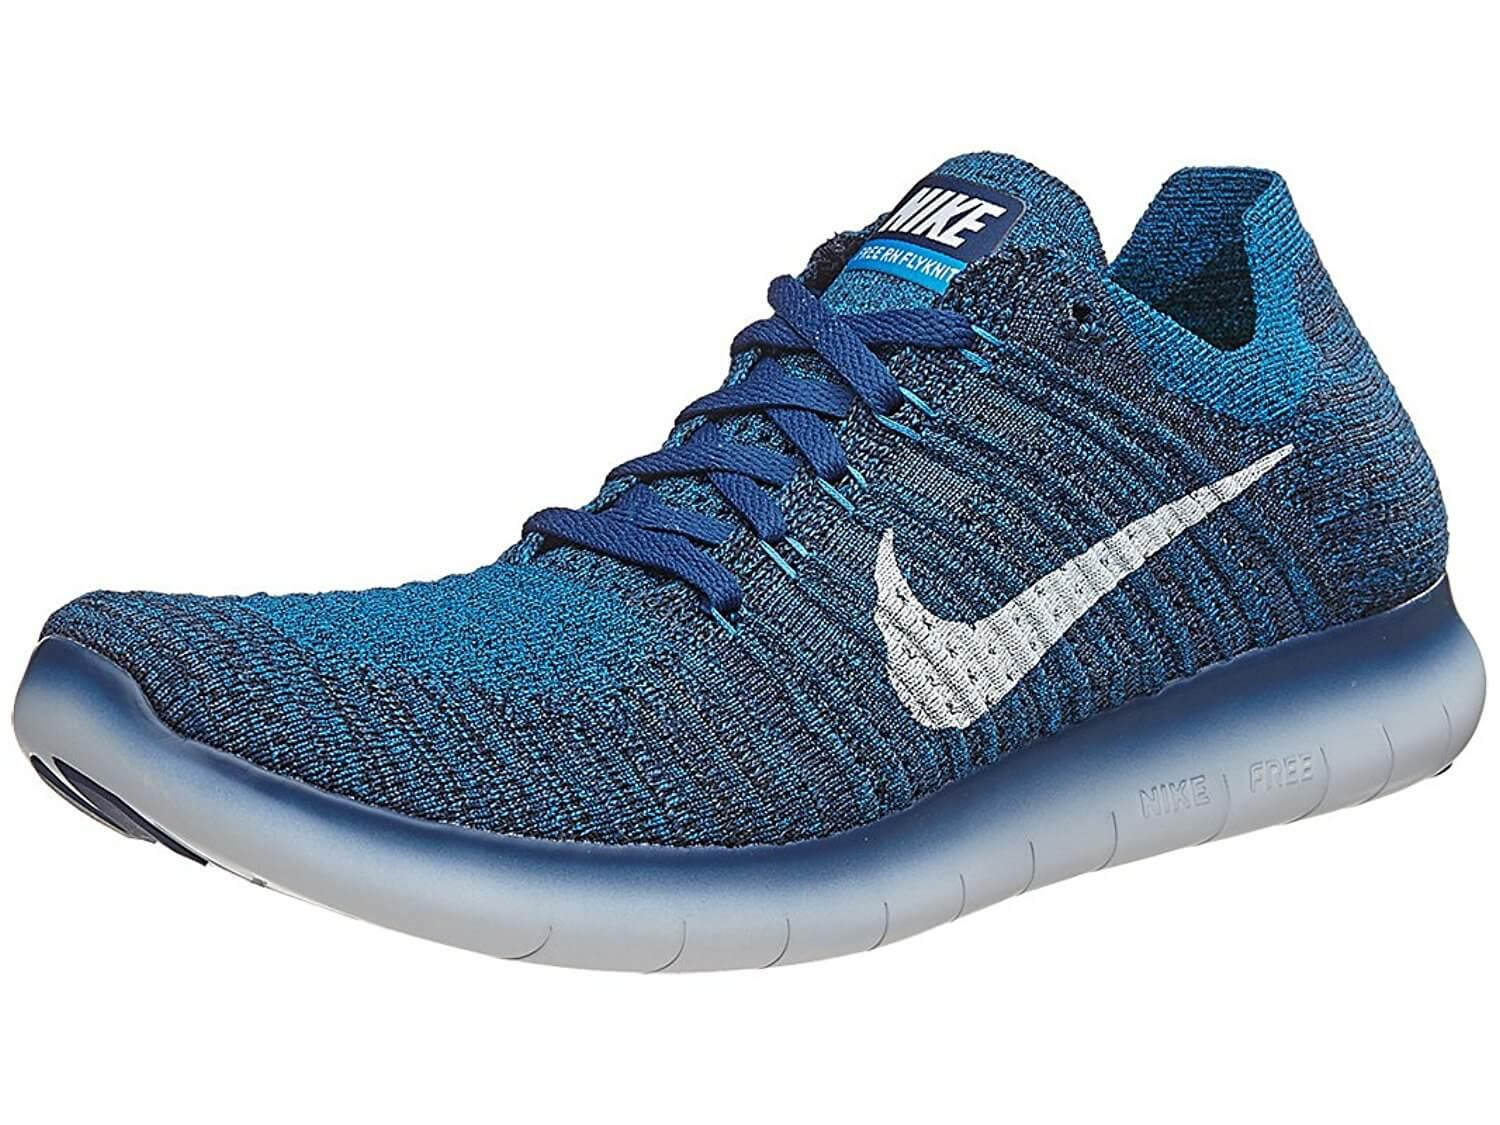 Nike Free RN Motion Flyknit - To Buy or Not in May 2018?